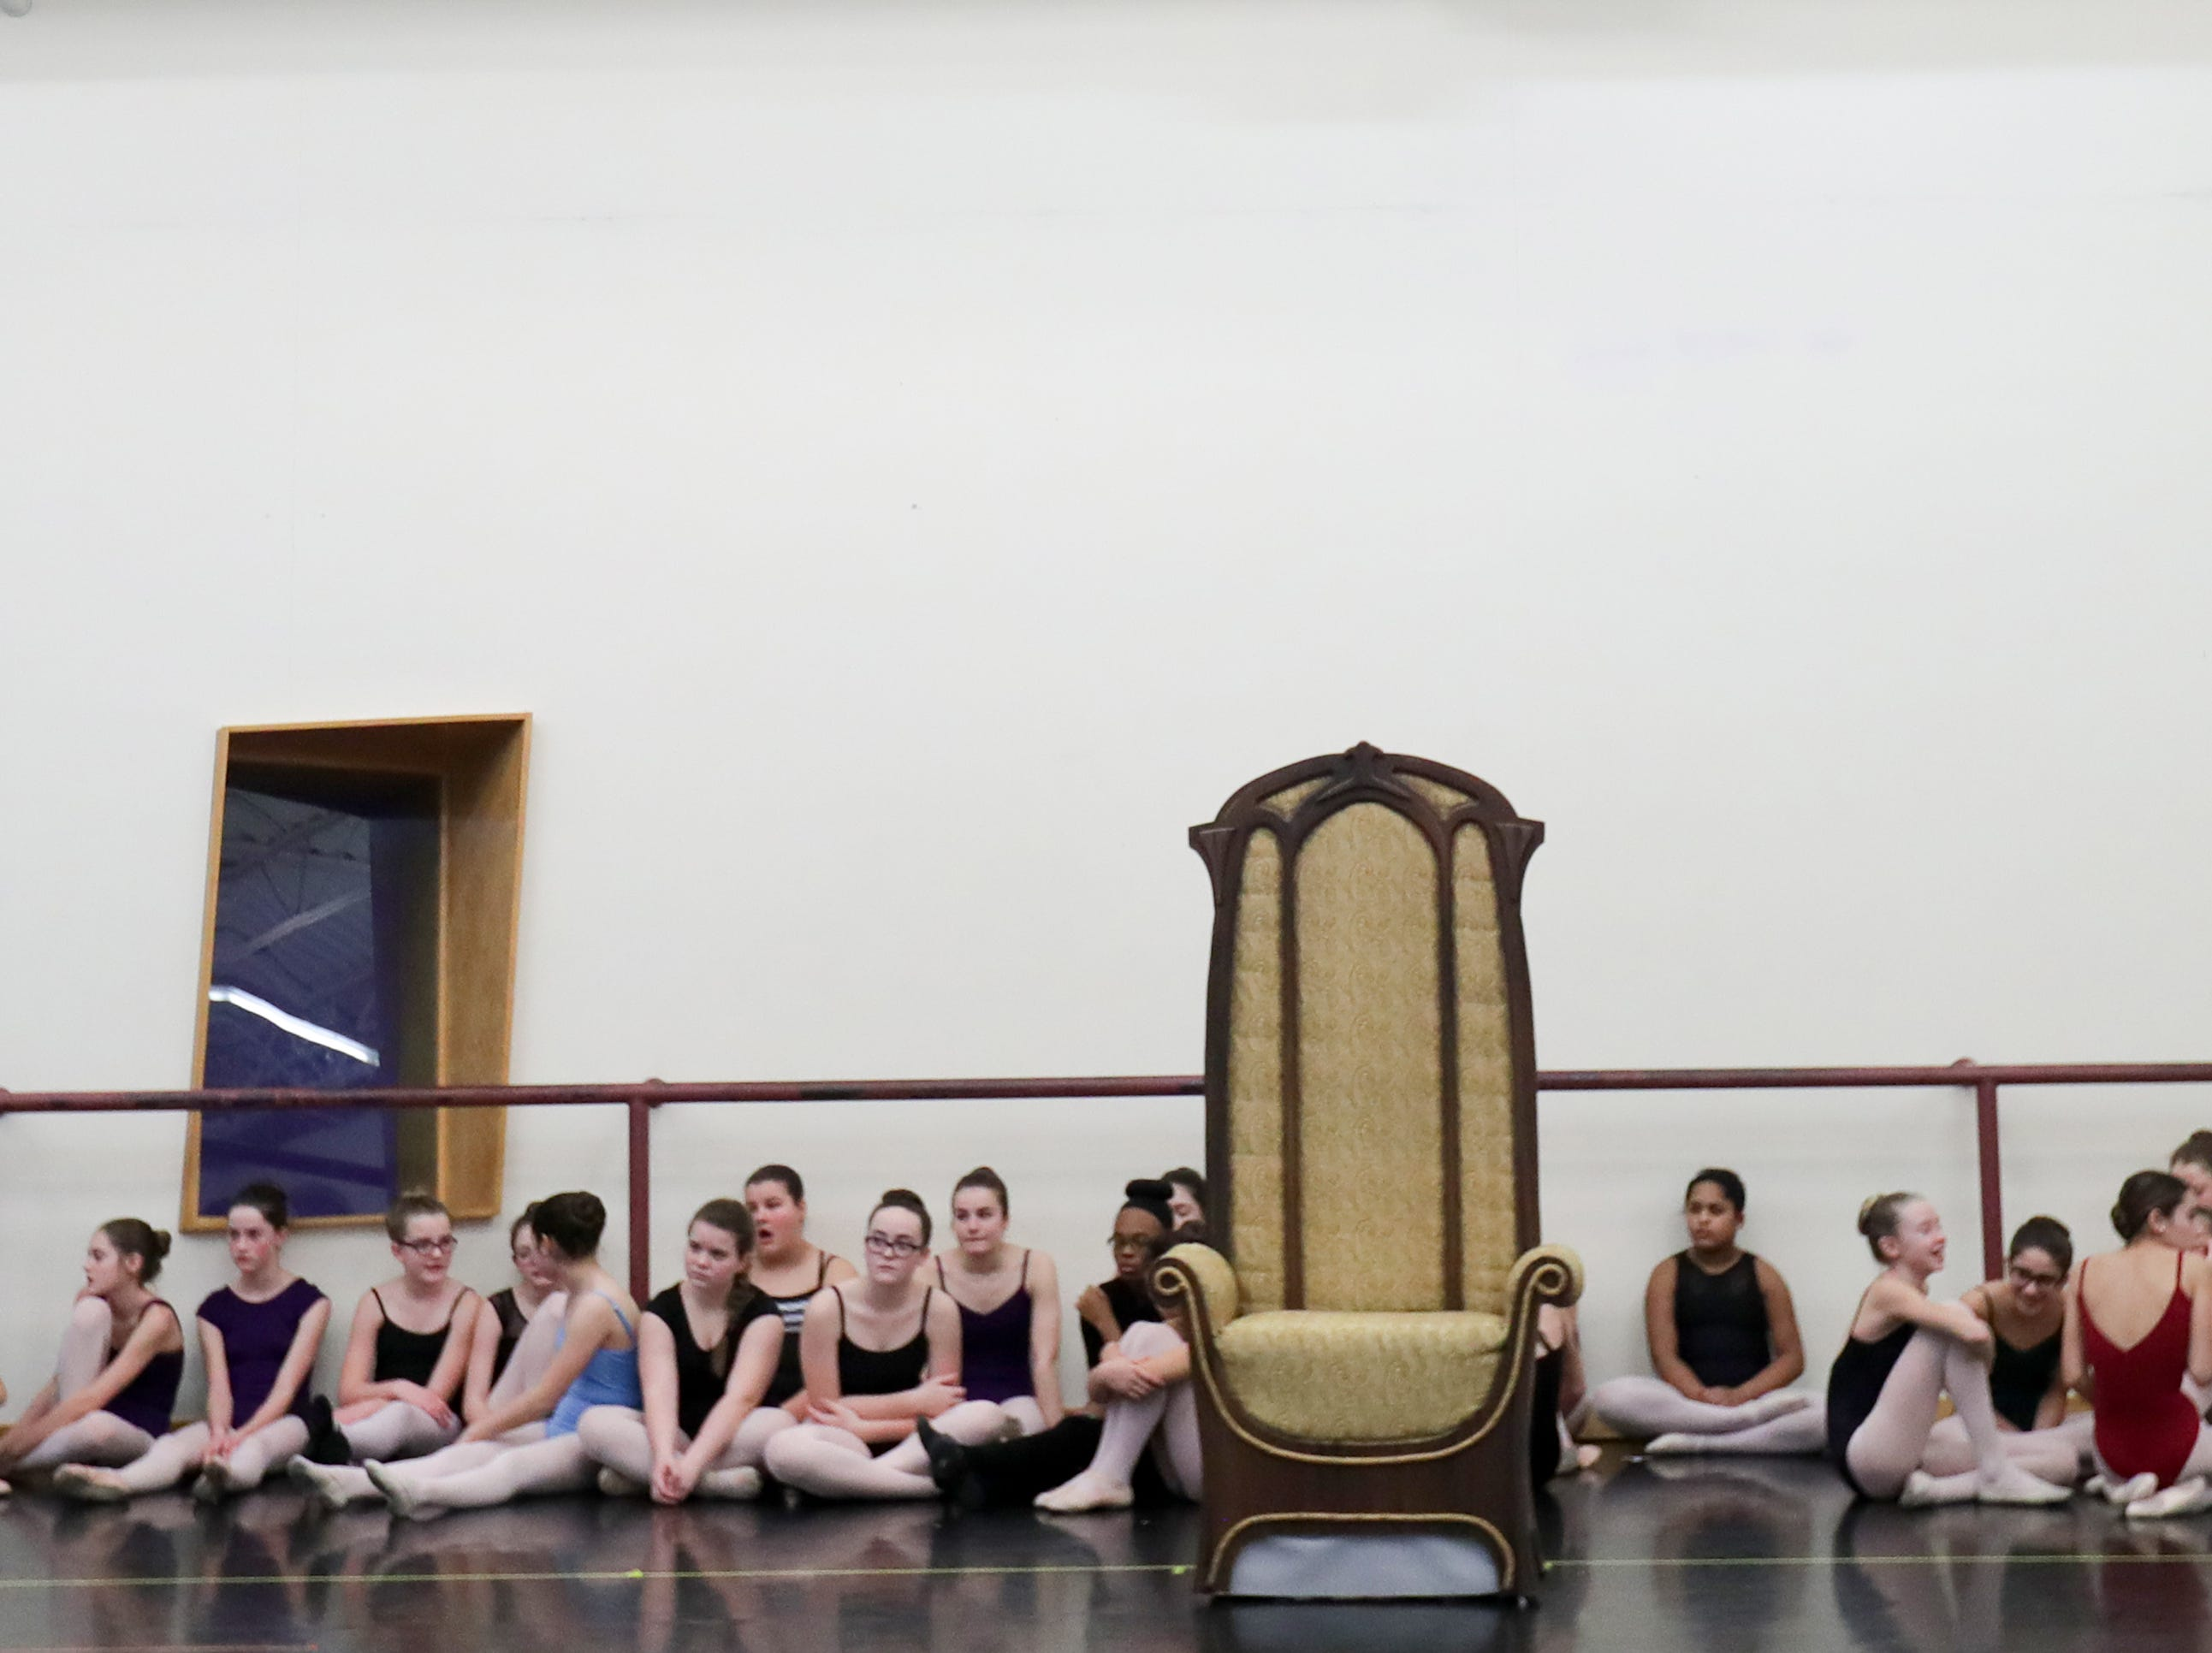 Rehearsal for an upcoming production of the Nutcracker.